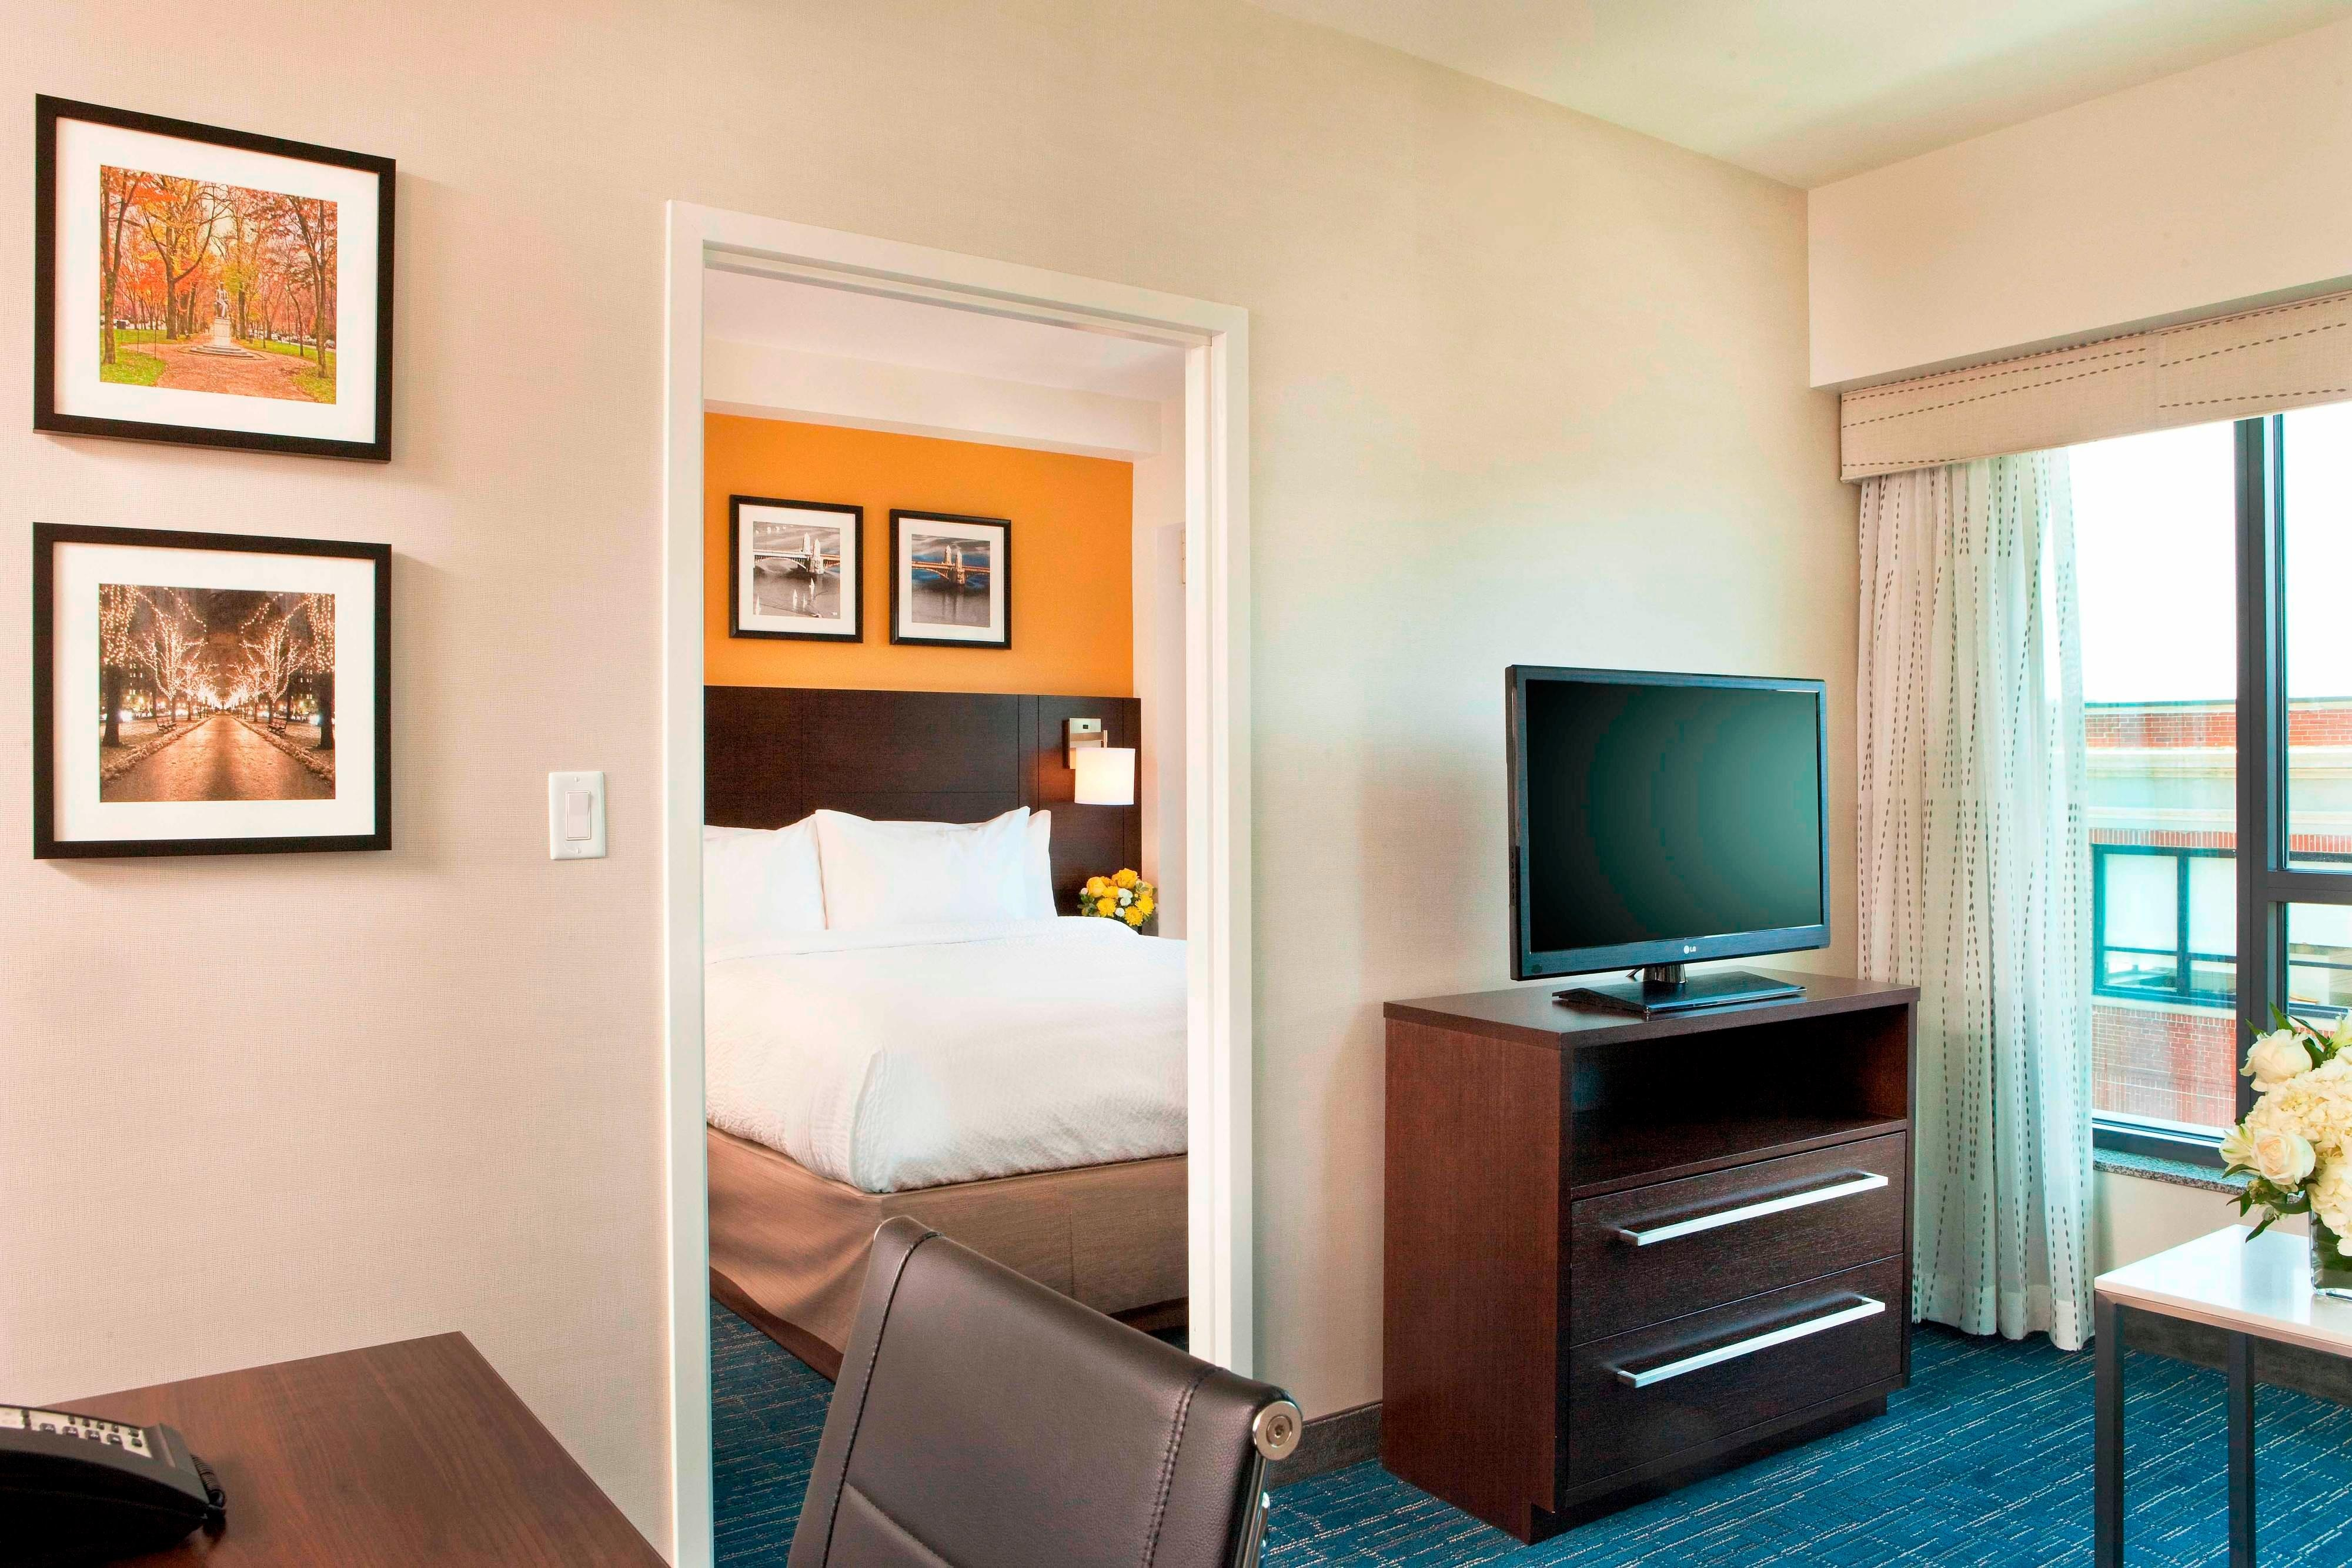 Extended stay deluxe boston 2 bedroom suites boston - Hotels with 2 bedroom suites in boston ma ...